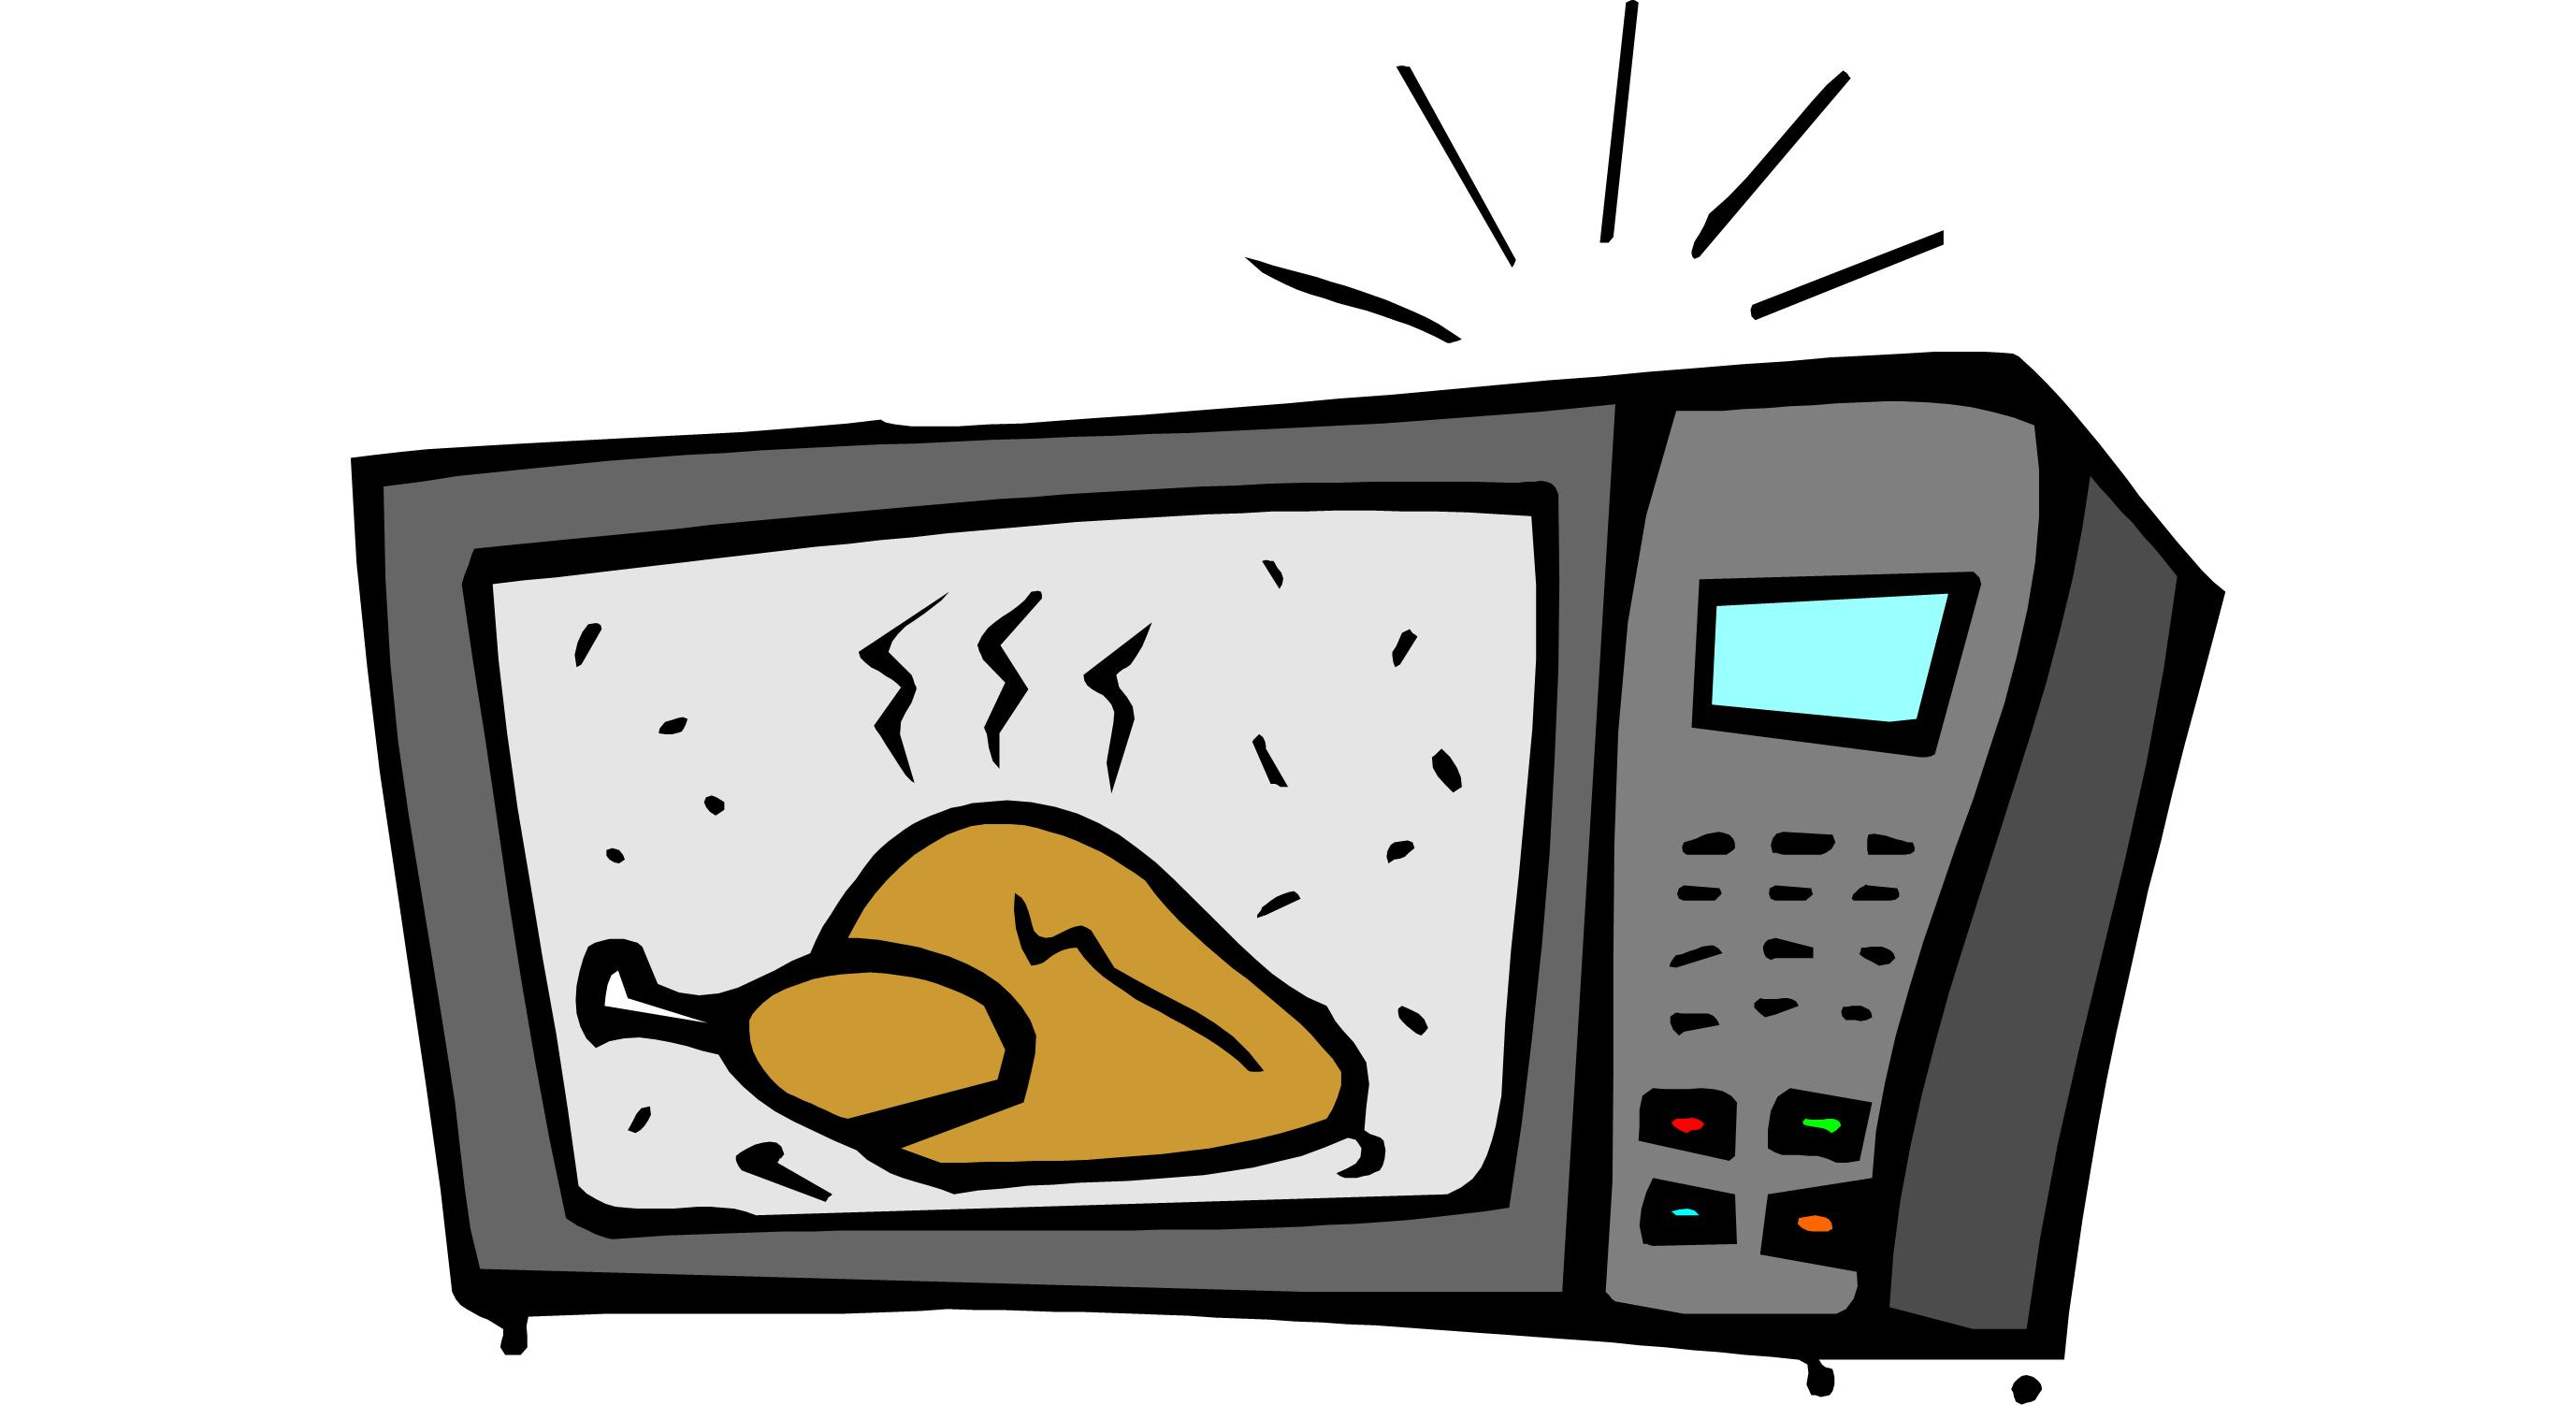 Microwave clipart. Free cliparts download clip